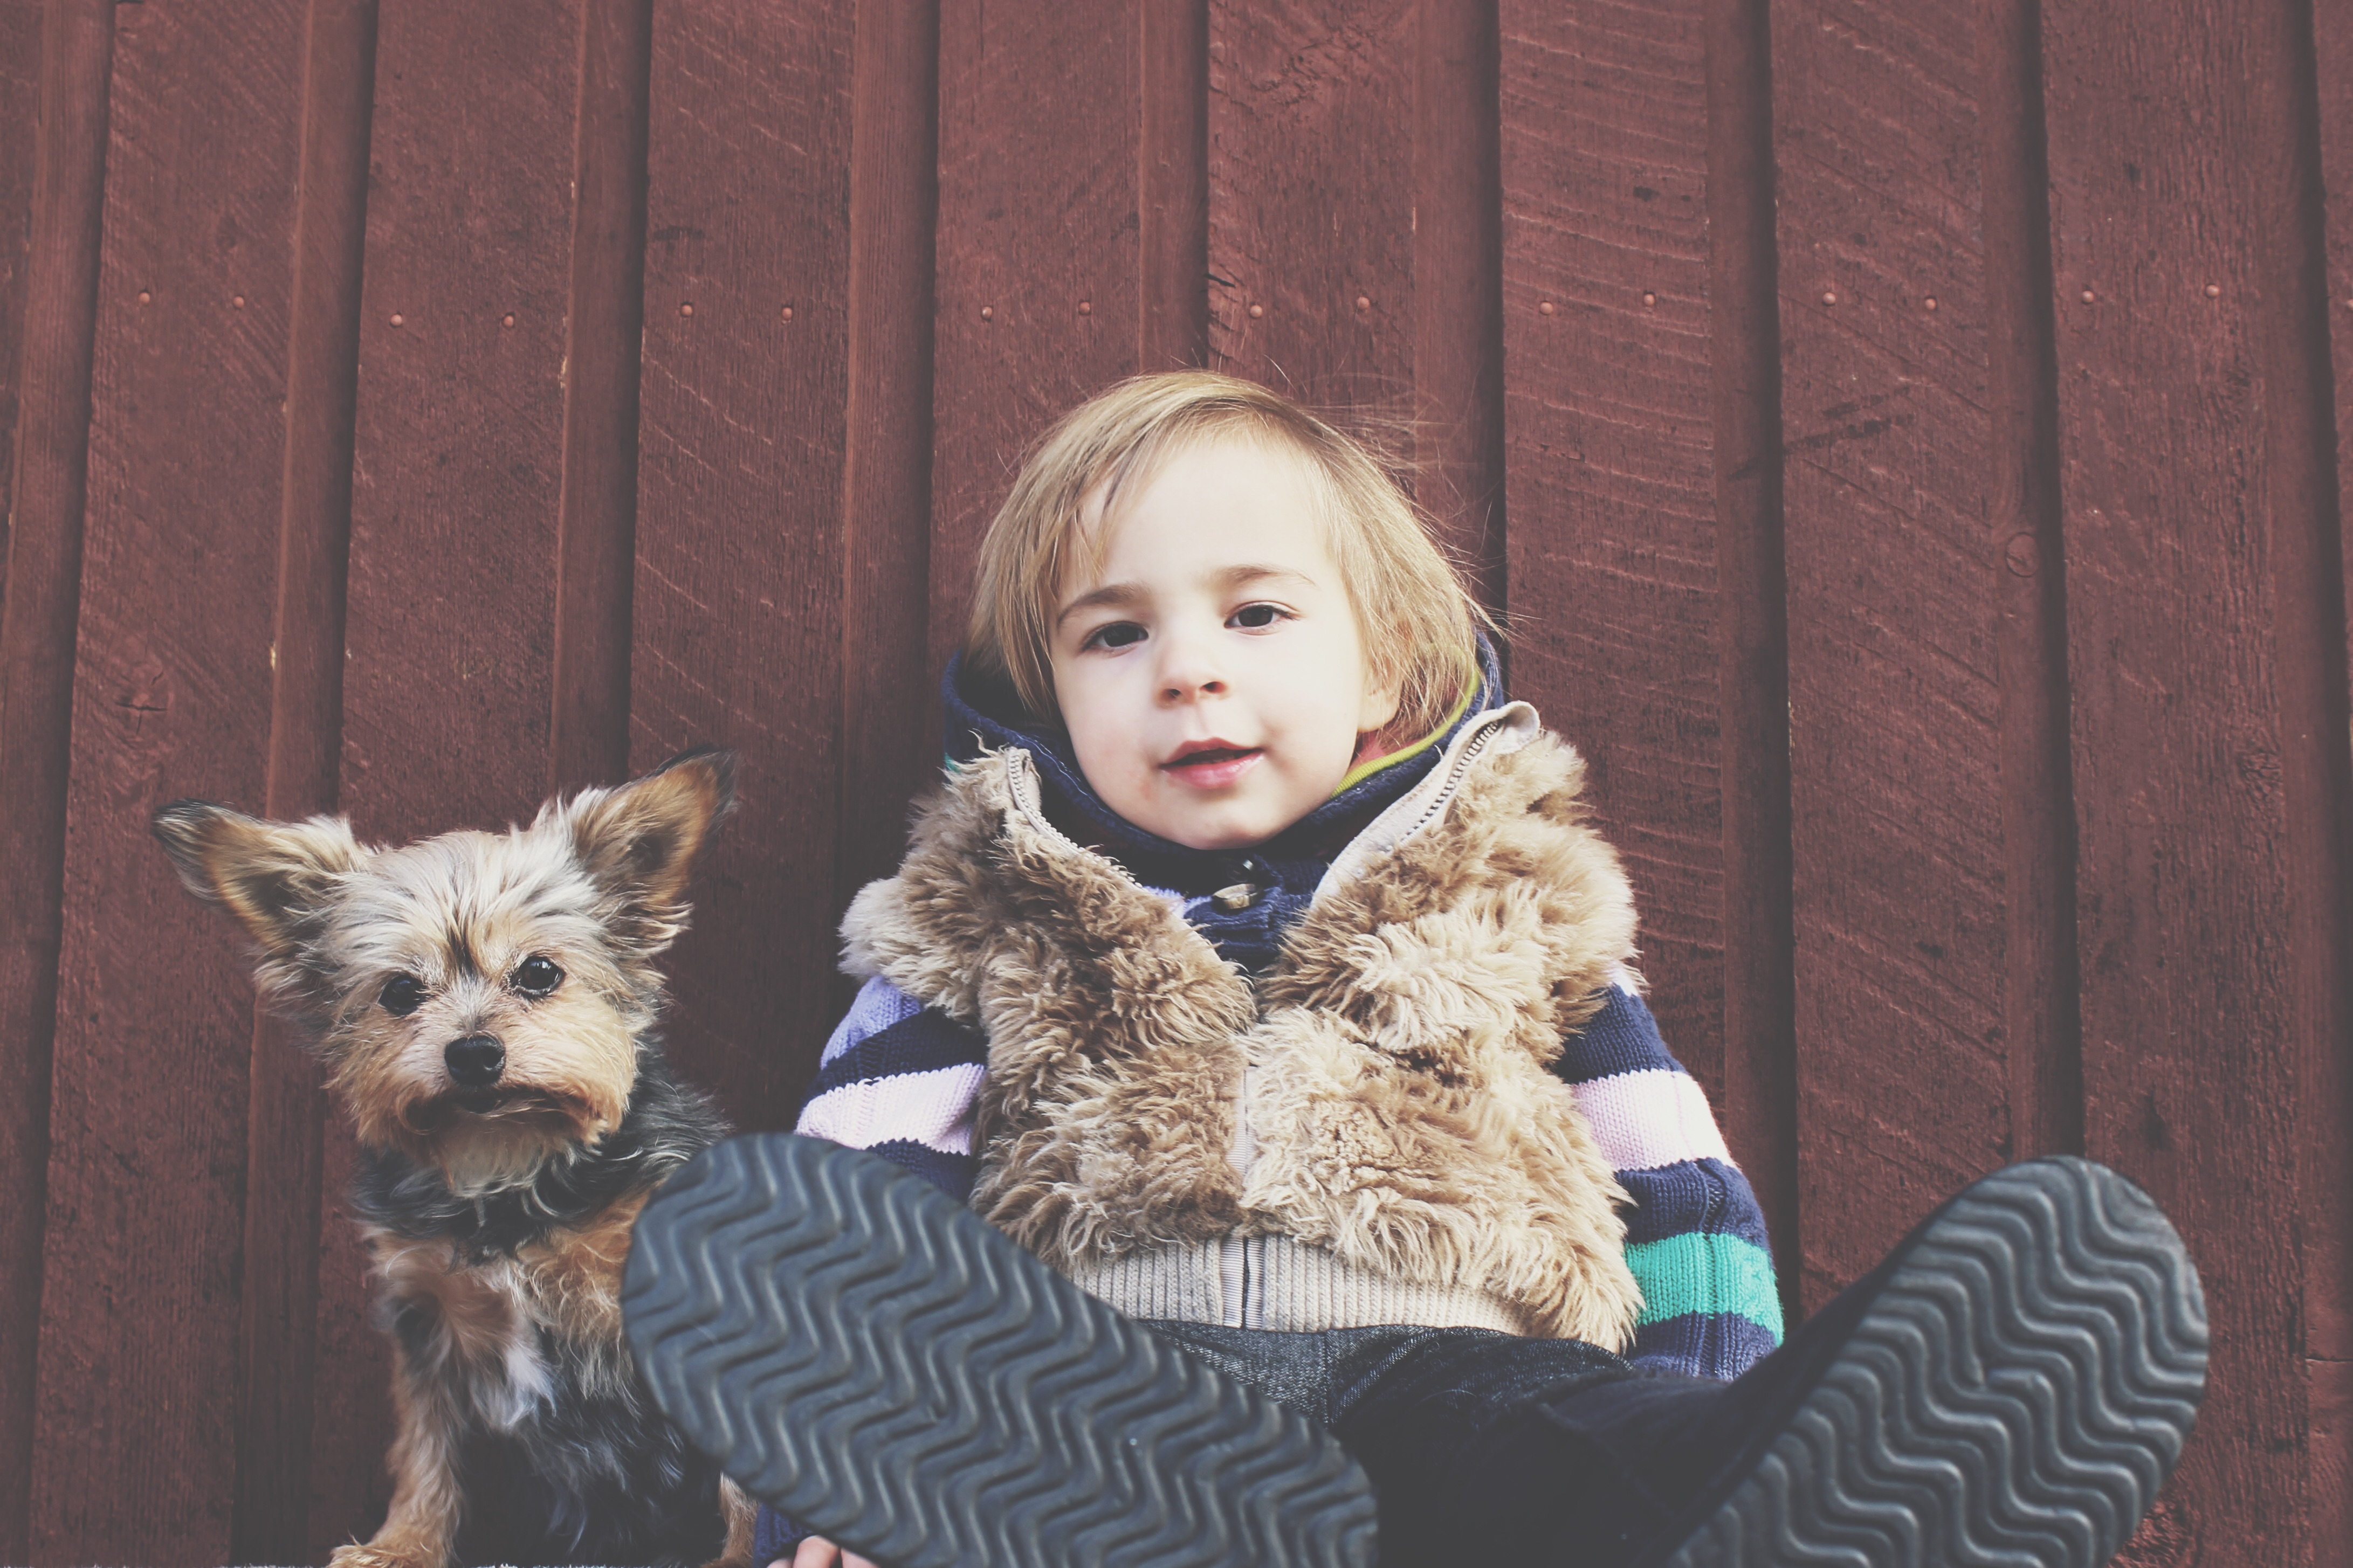 Dogs with cancer are helping kids.